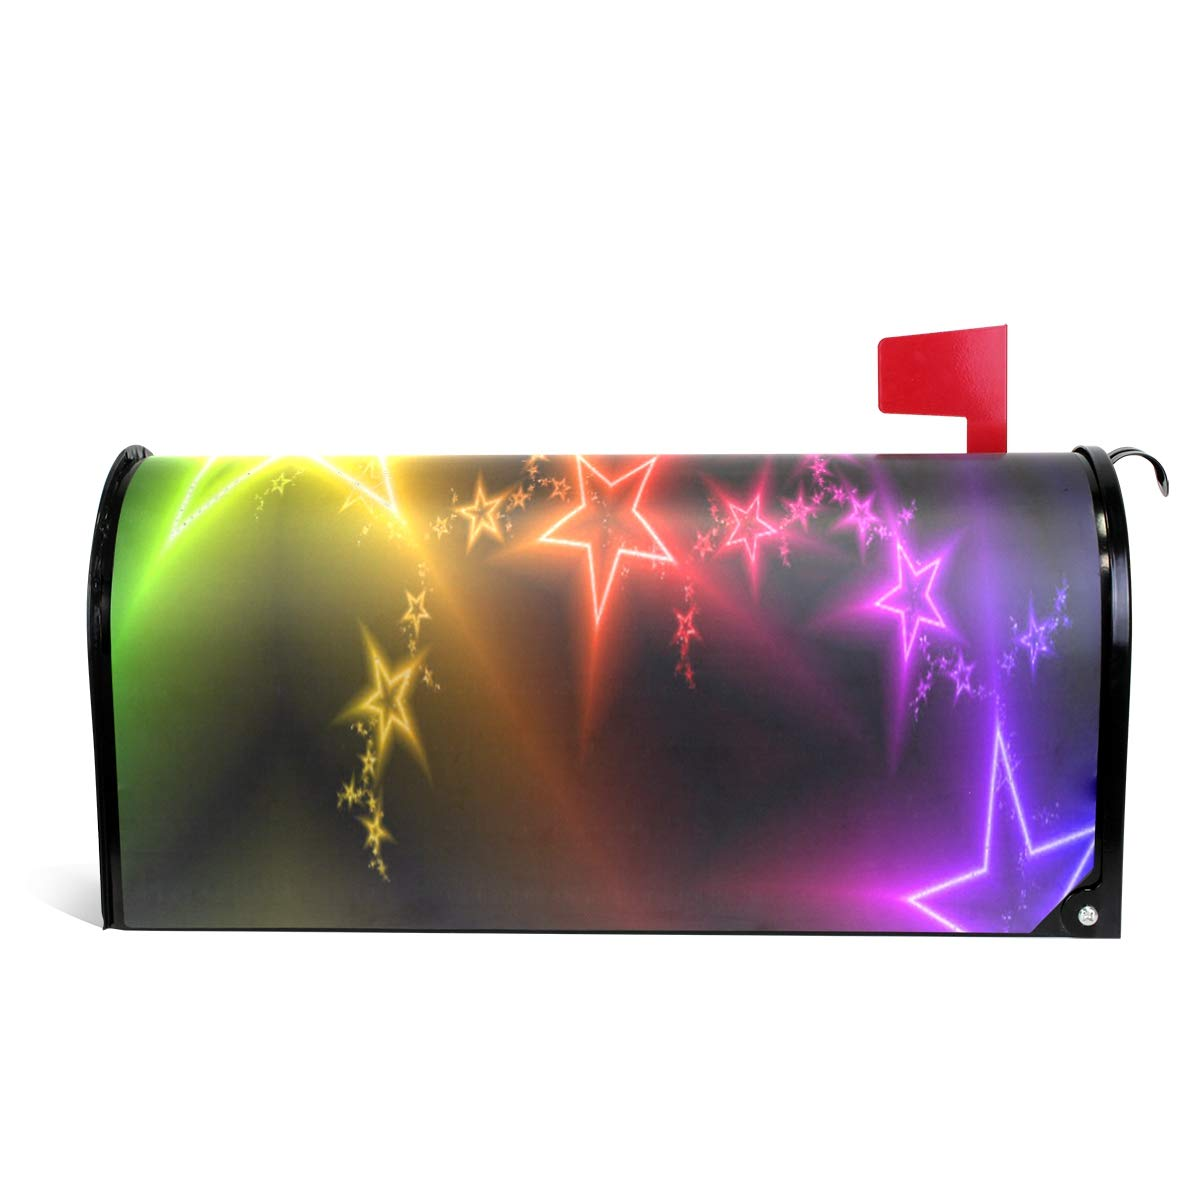 CHENG XIN Mailbox Cover Personalized Colorful Star Light Magnetic PVC Suitable for US Mailbox